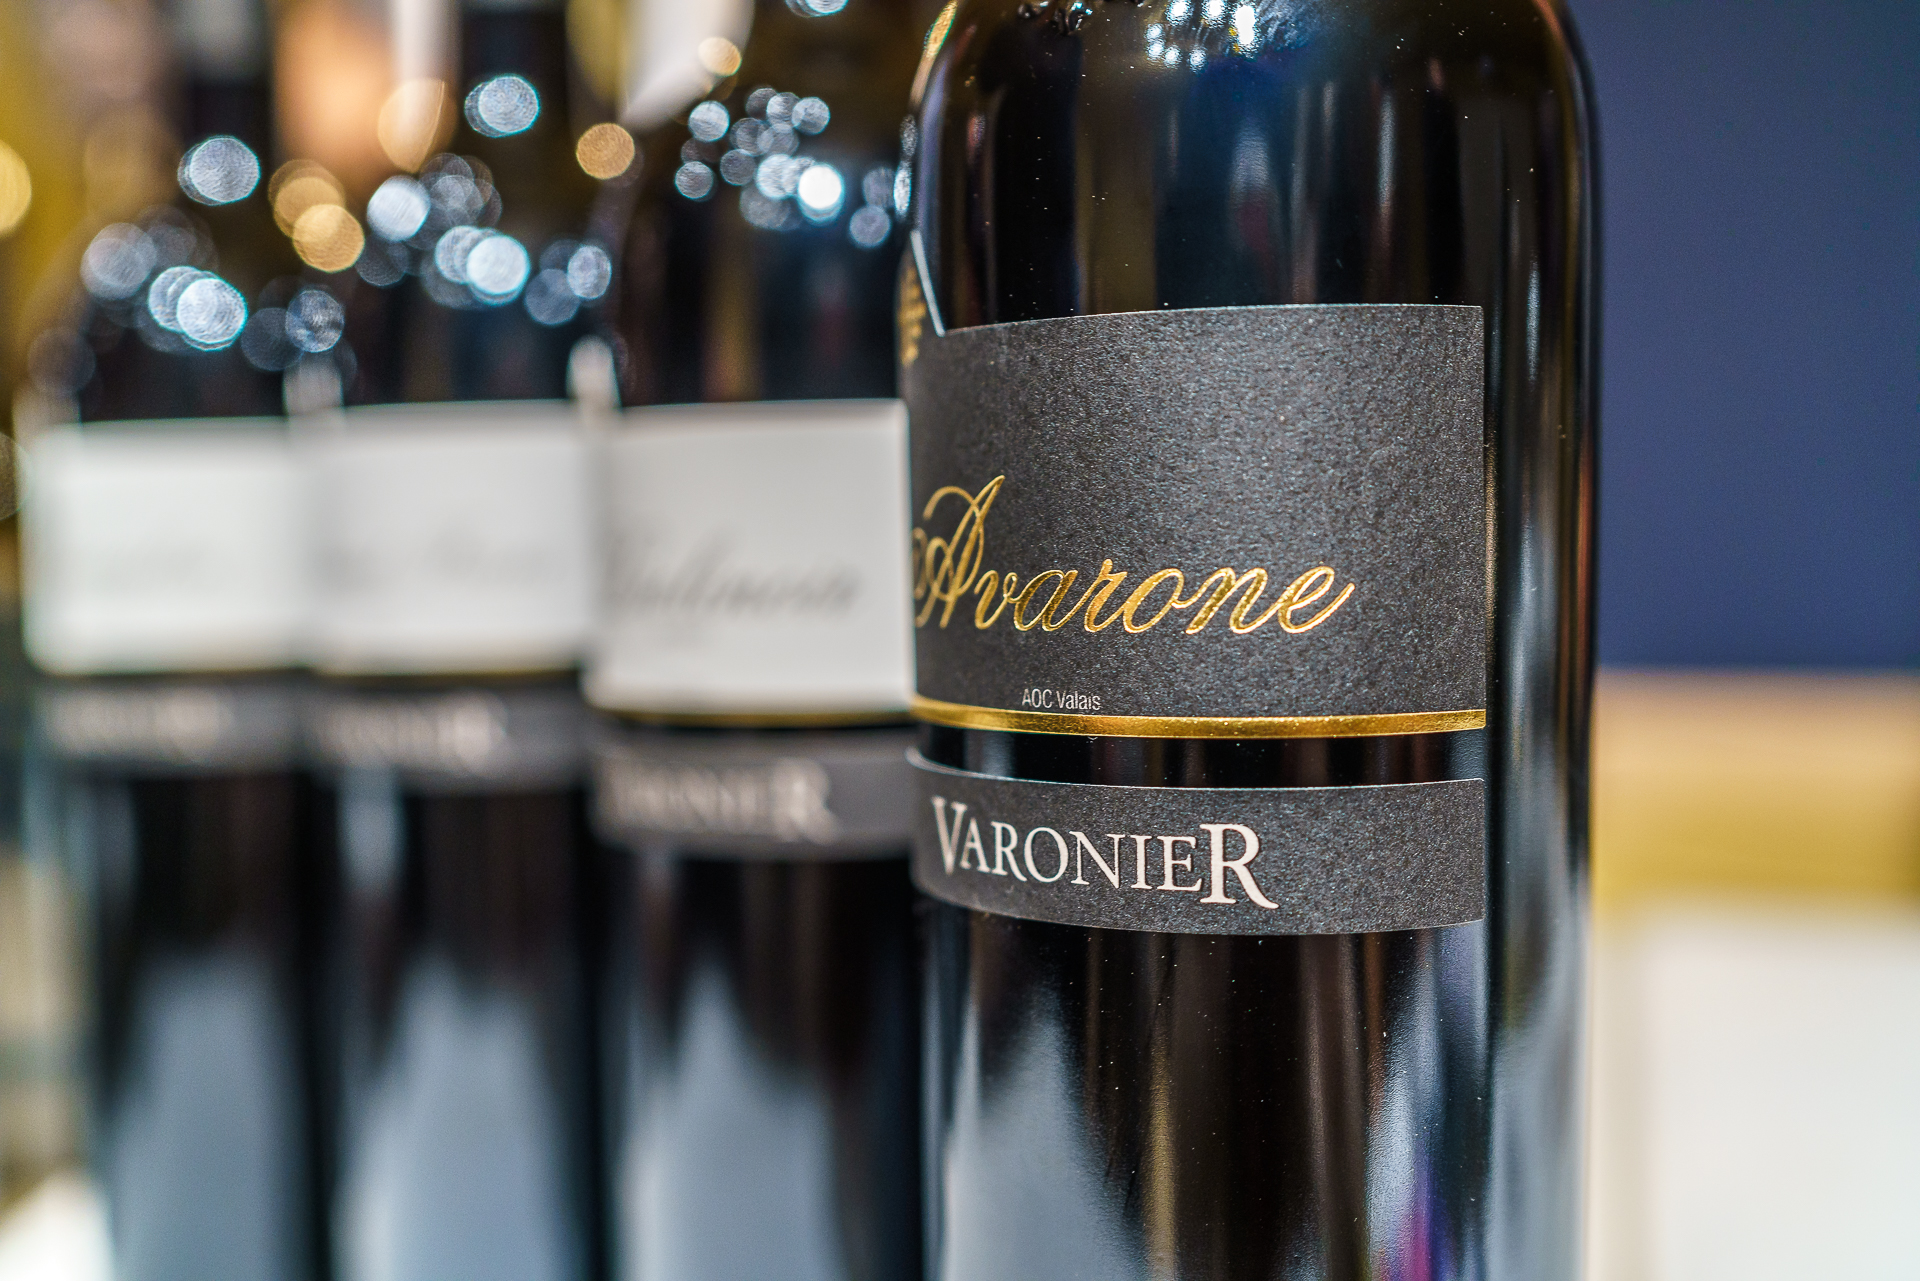 Avarone-Varonier-Wein-Wallis